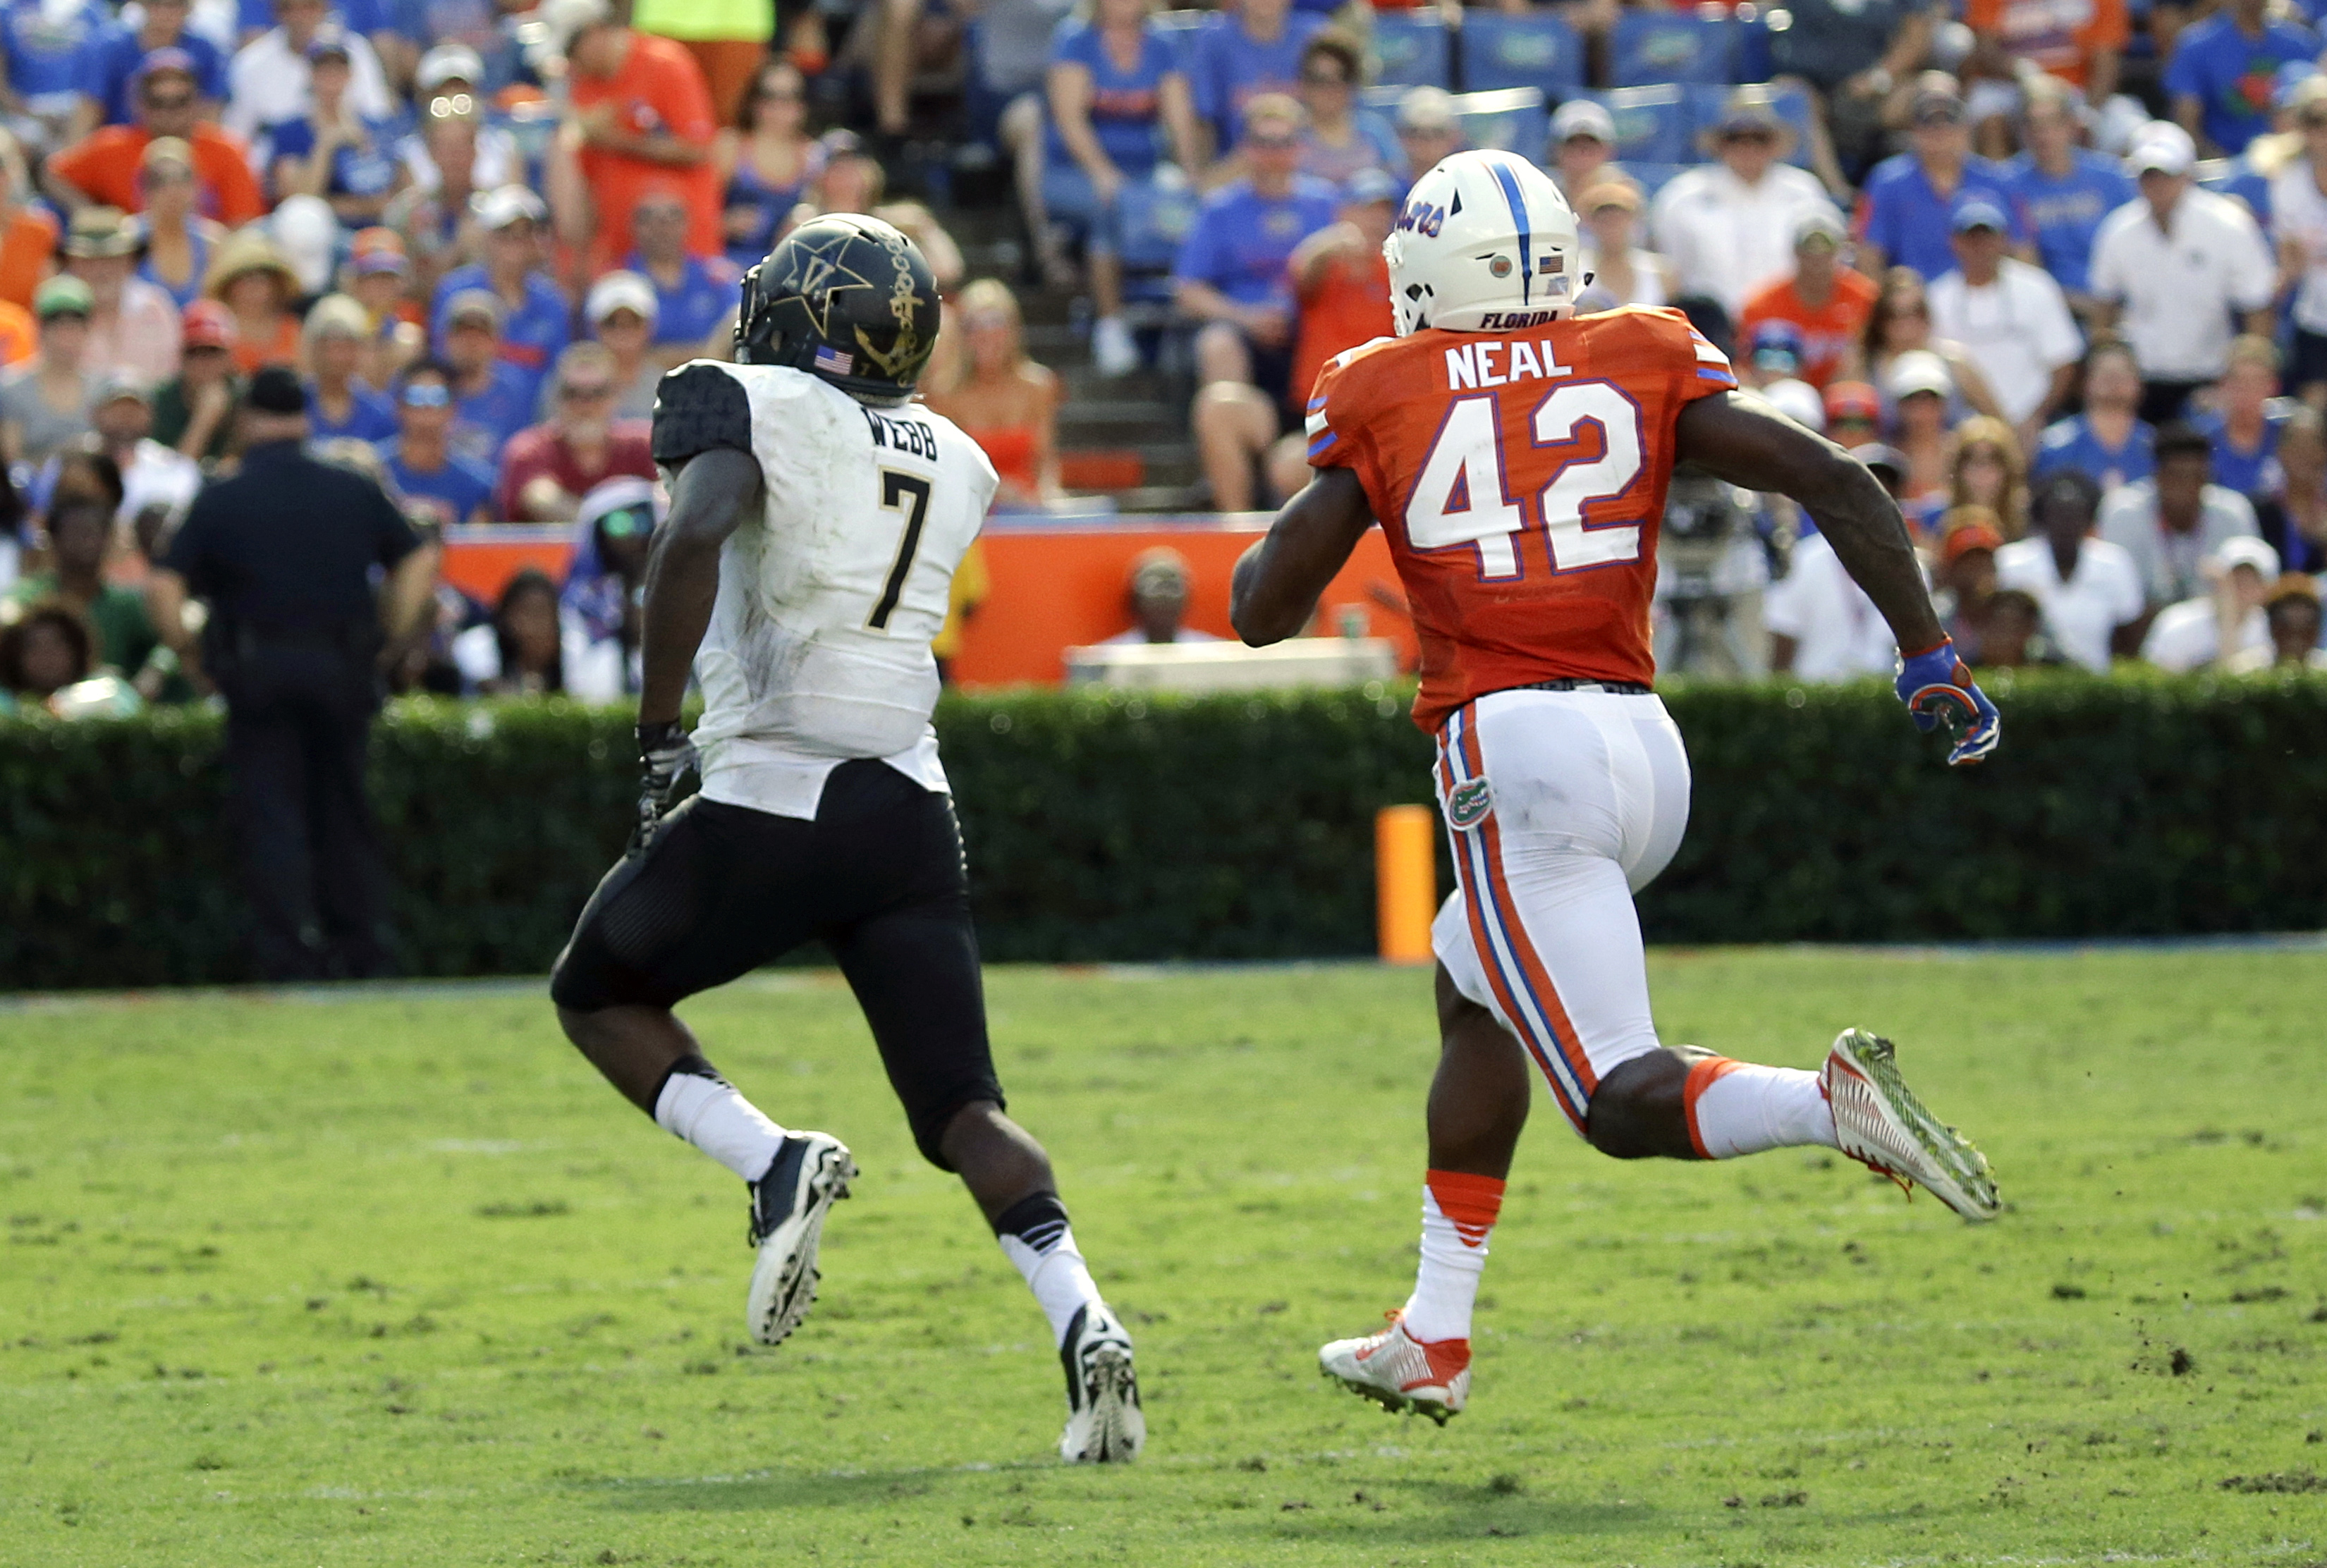 Vanderbilt running back Ralph Webb (7) runs past Florida defensive back Keanu Neal (42) on his way to a 74-yard touchdown during the first half of an NCAA college football game, Saturday, Nov. 7, 2015, in Gainesville, Fla. (AP Photo/John Raoux)